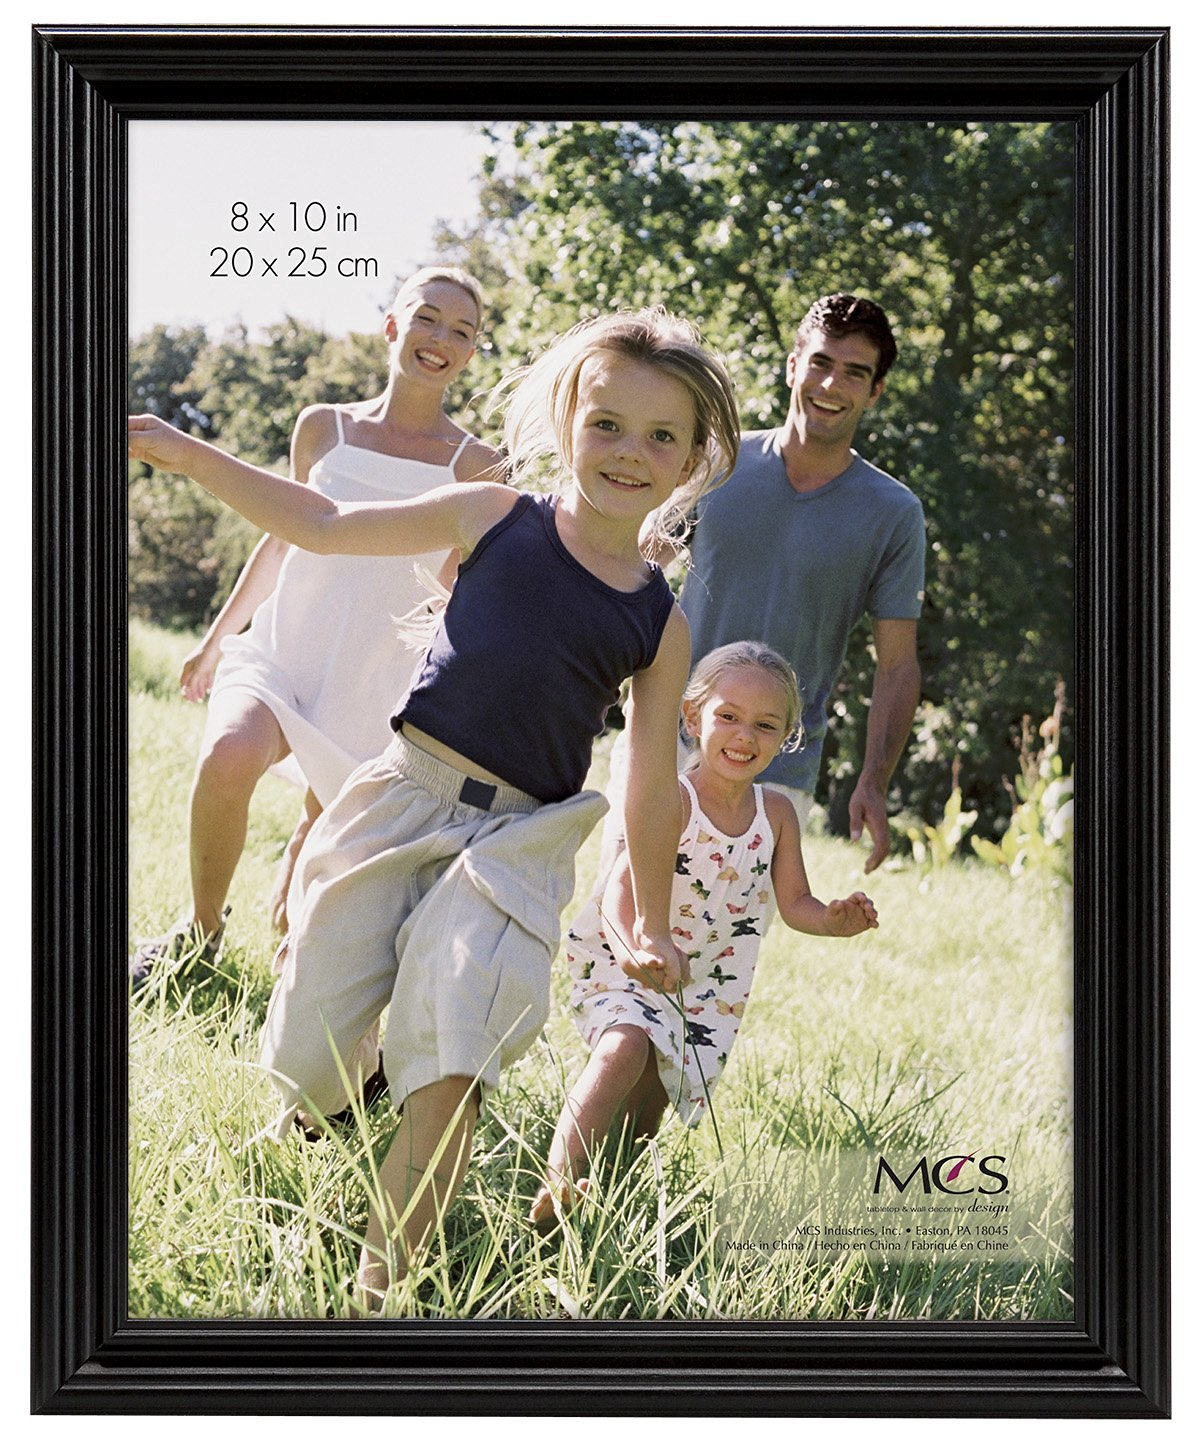 MCS 8x10 Inch Solid Wood Picture Frame, Black (53624)